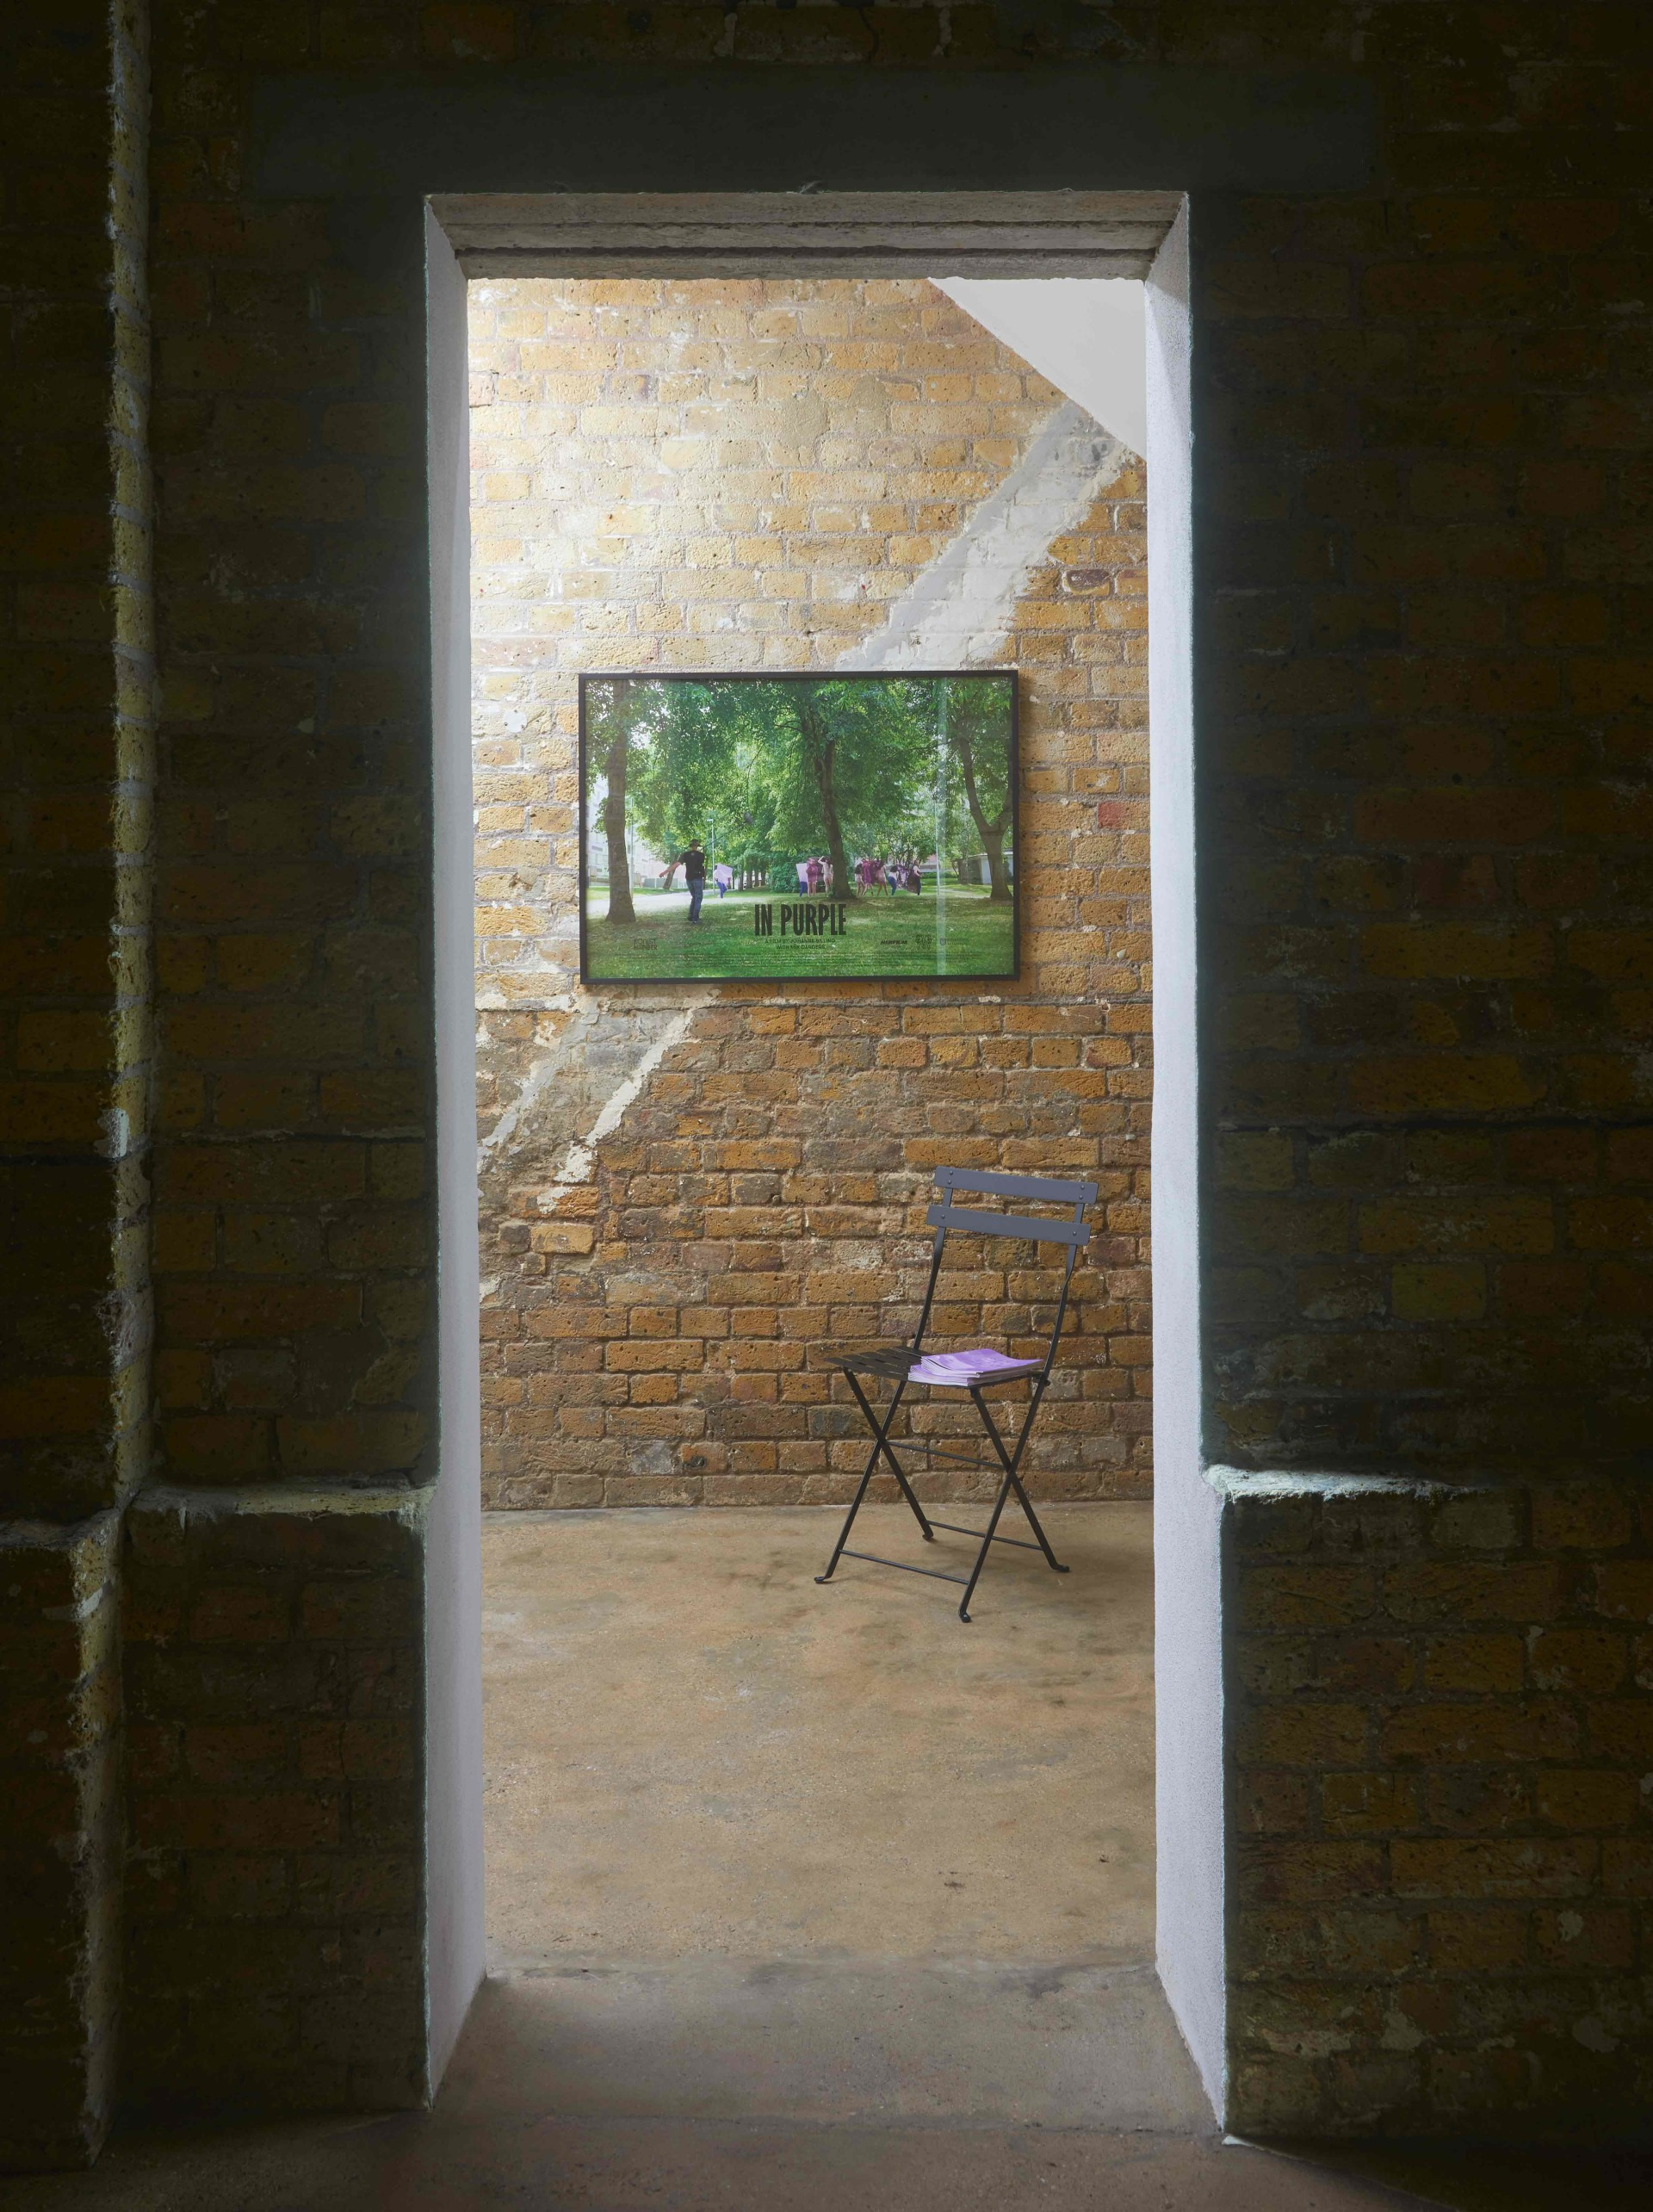 Johanna Billing In Purple — Hollybush Gardens, London, 2020